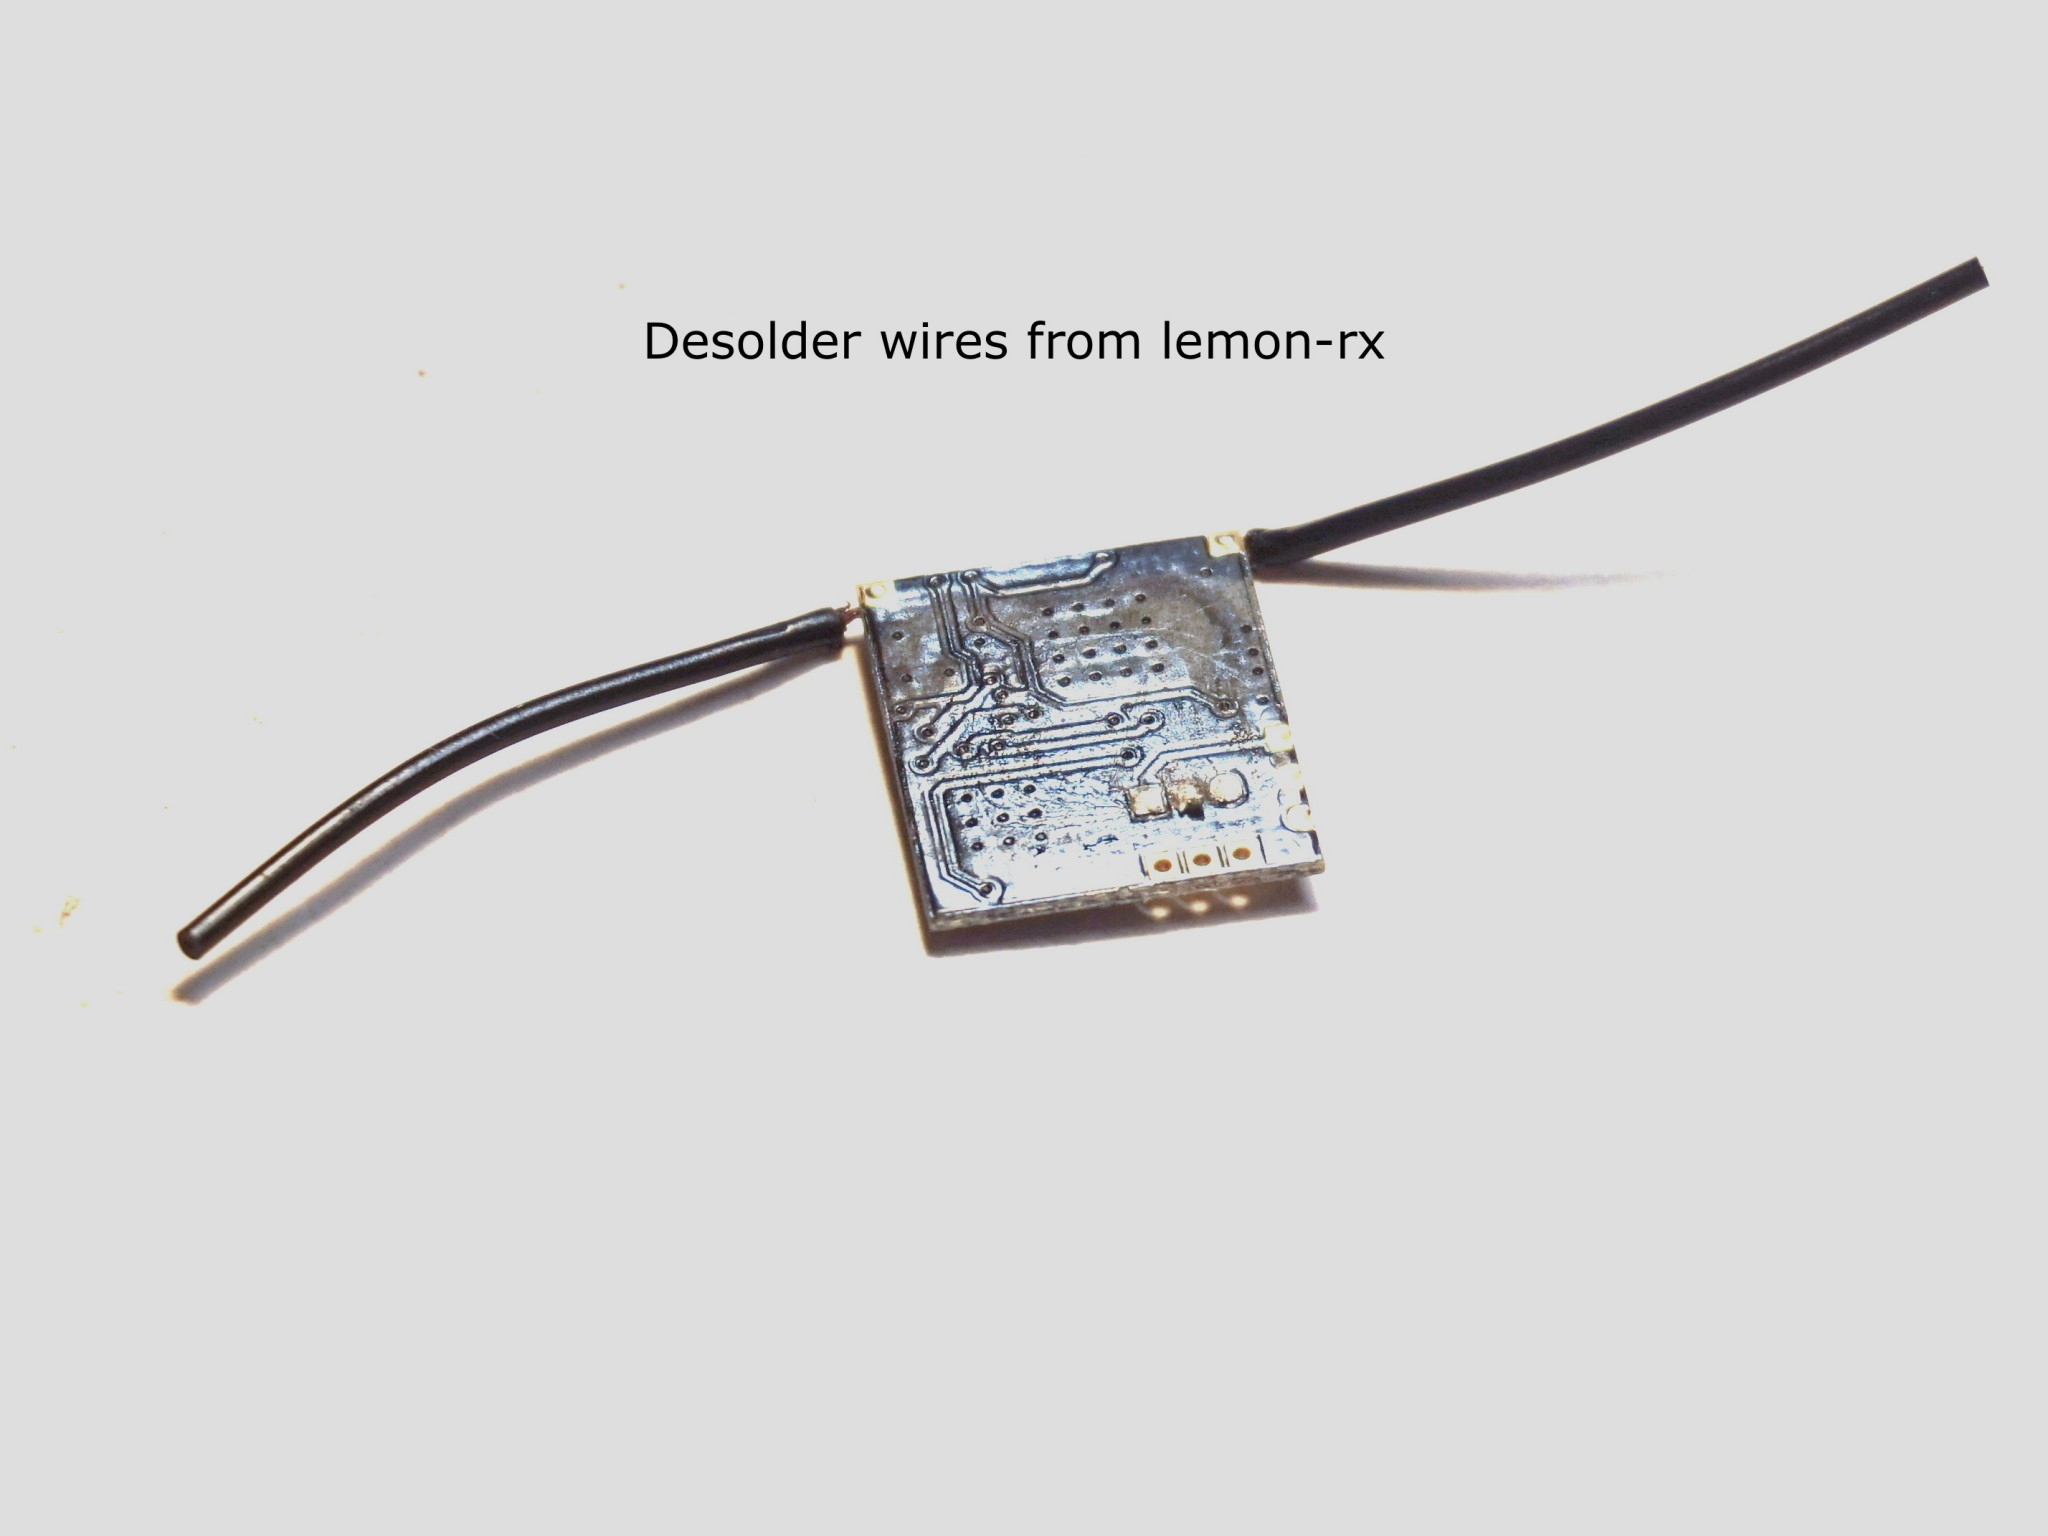 16 Channel Ir Remote Controller Philips Code Rc5 besides P467847 besides 1175 Wltoys V393a Headless Mode 58g Fpv Rc Quadcopter With 720p Camera together with Drone Insecurities furthermore What Do I Need For A Basic Rf Circuit. on rc controller and receiver